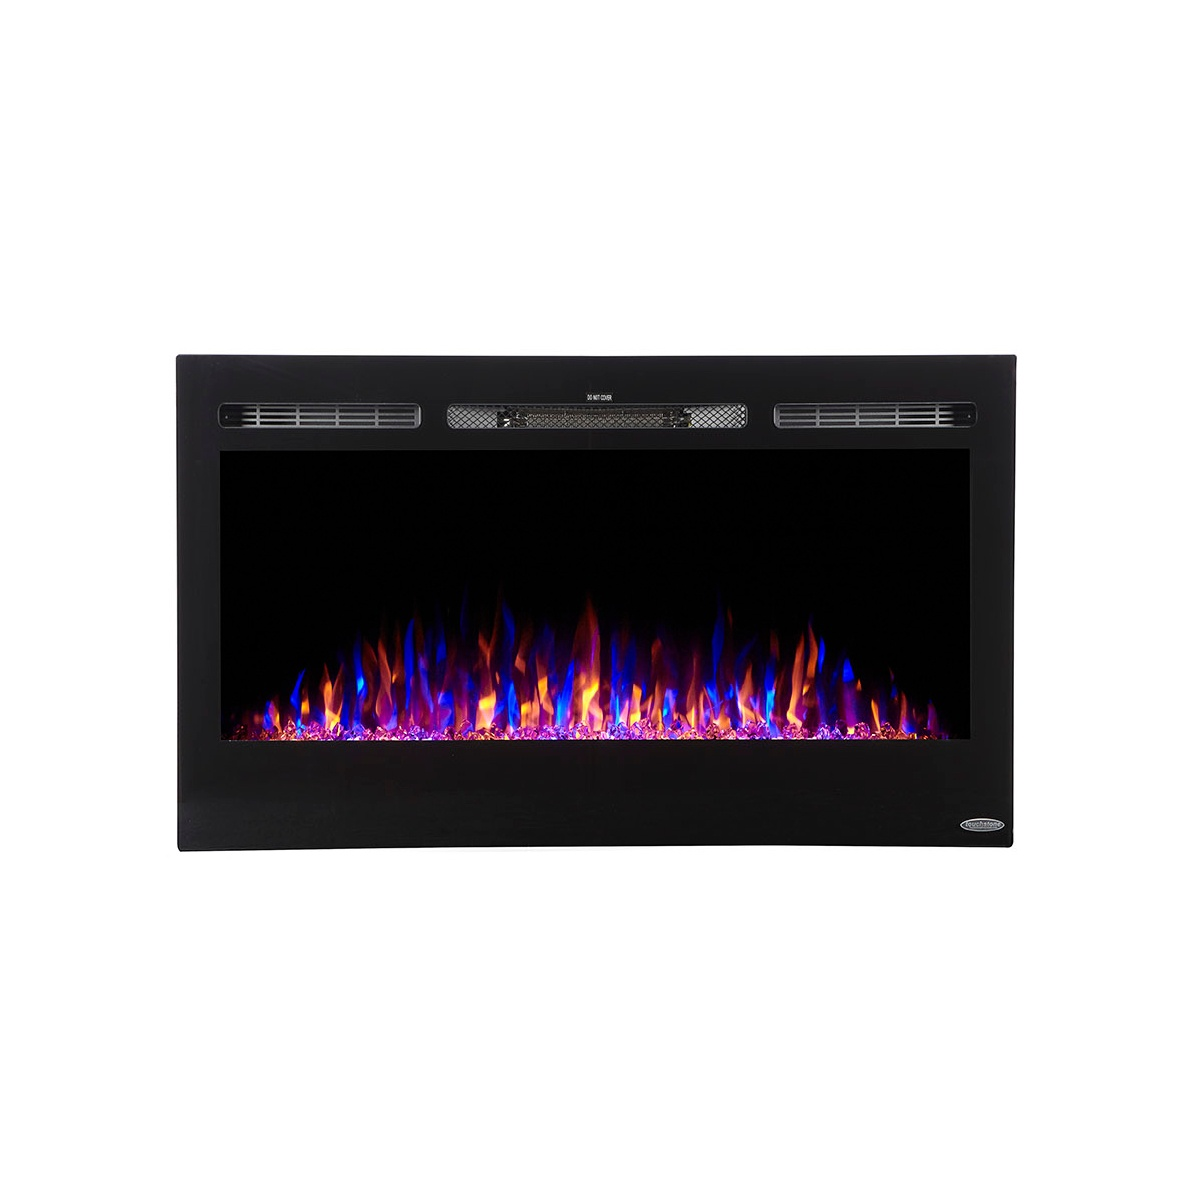 touchstone compact 36 inch electric fireplace 80014